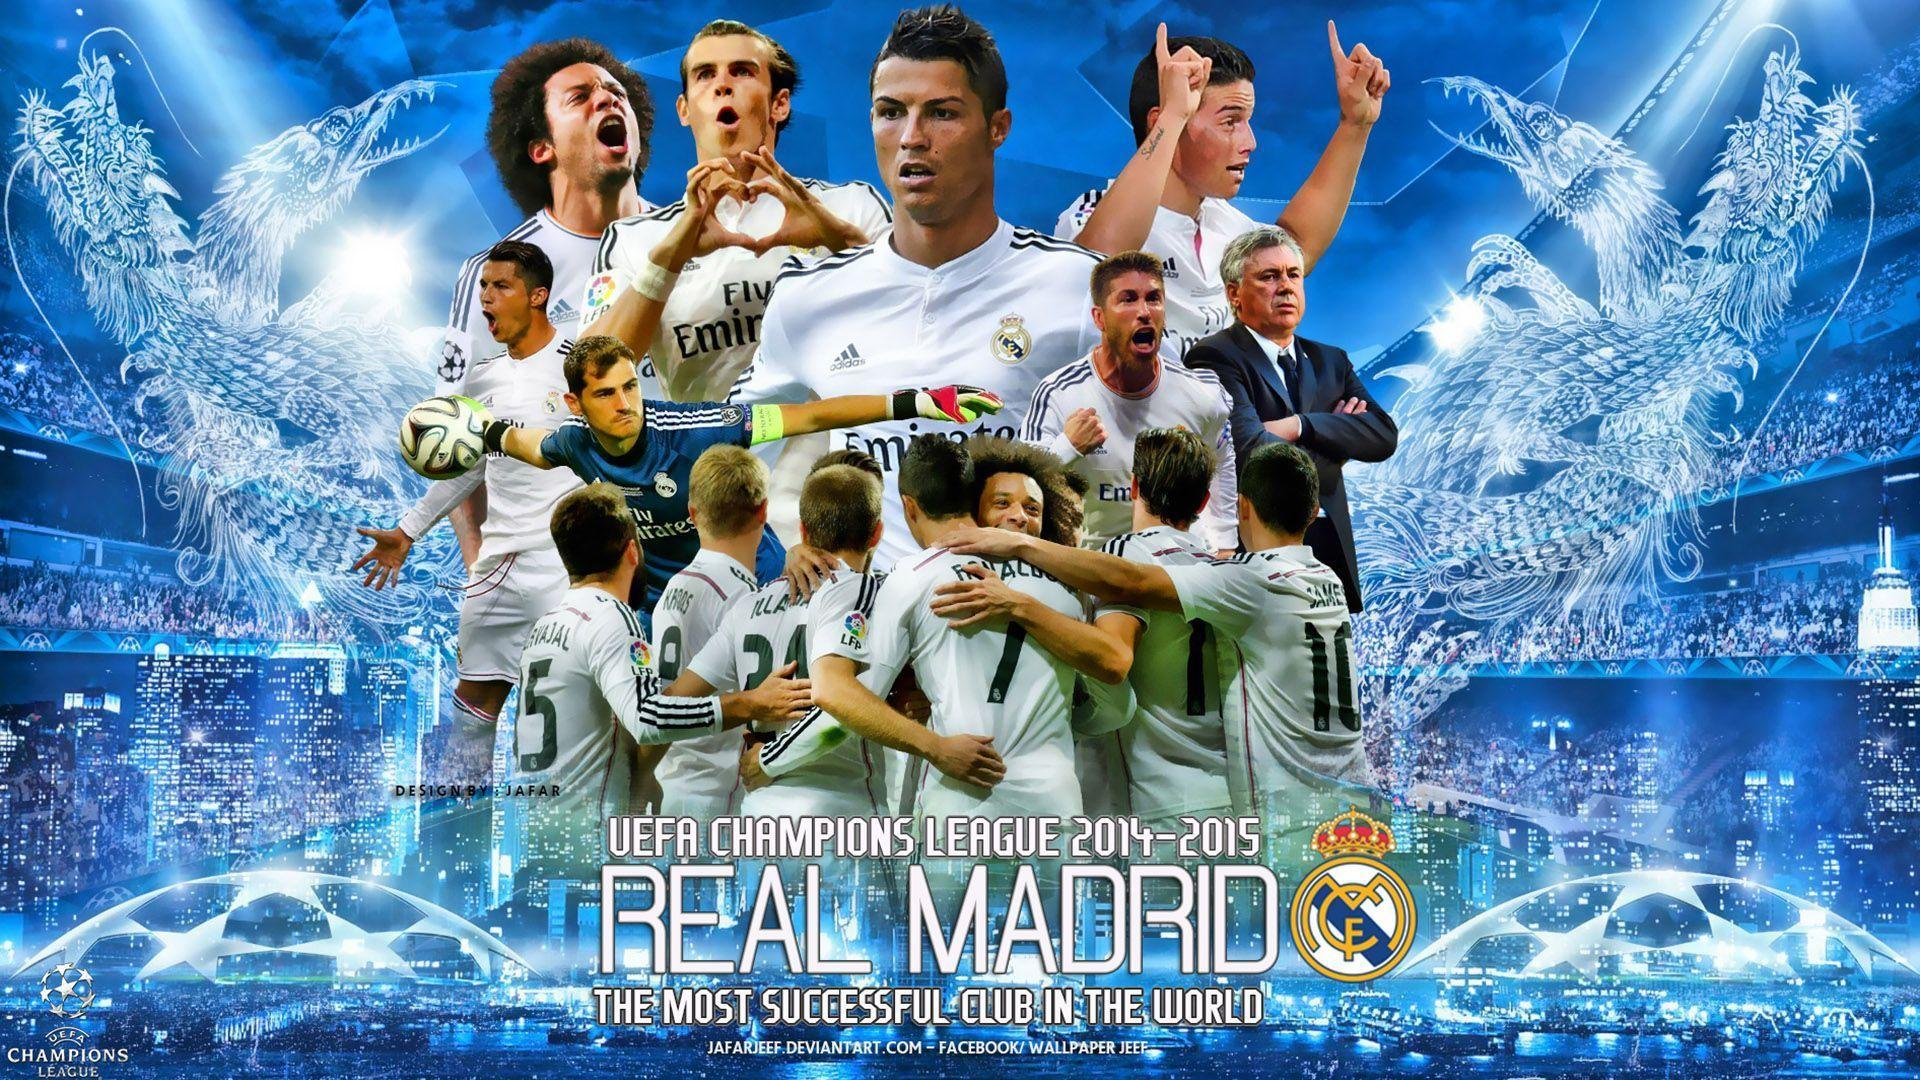 Real madrid logo wallpapers hd 2015 wallpaper cave for Wallpaper home 2015